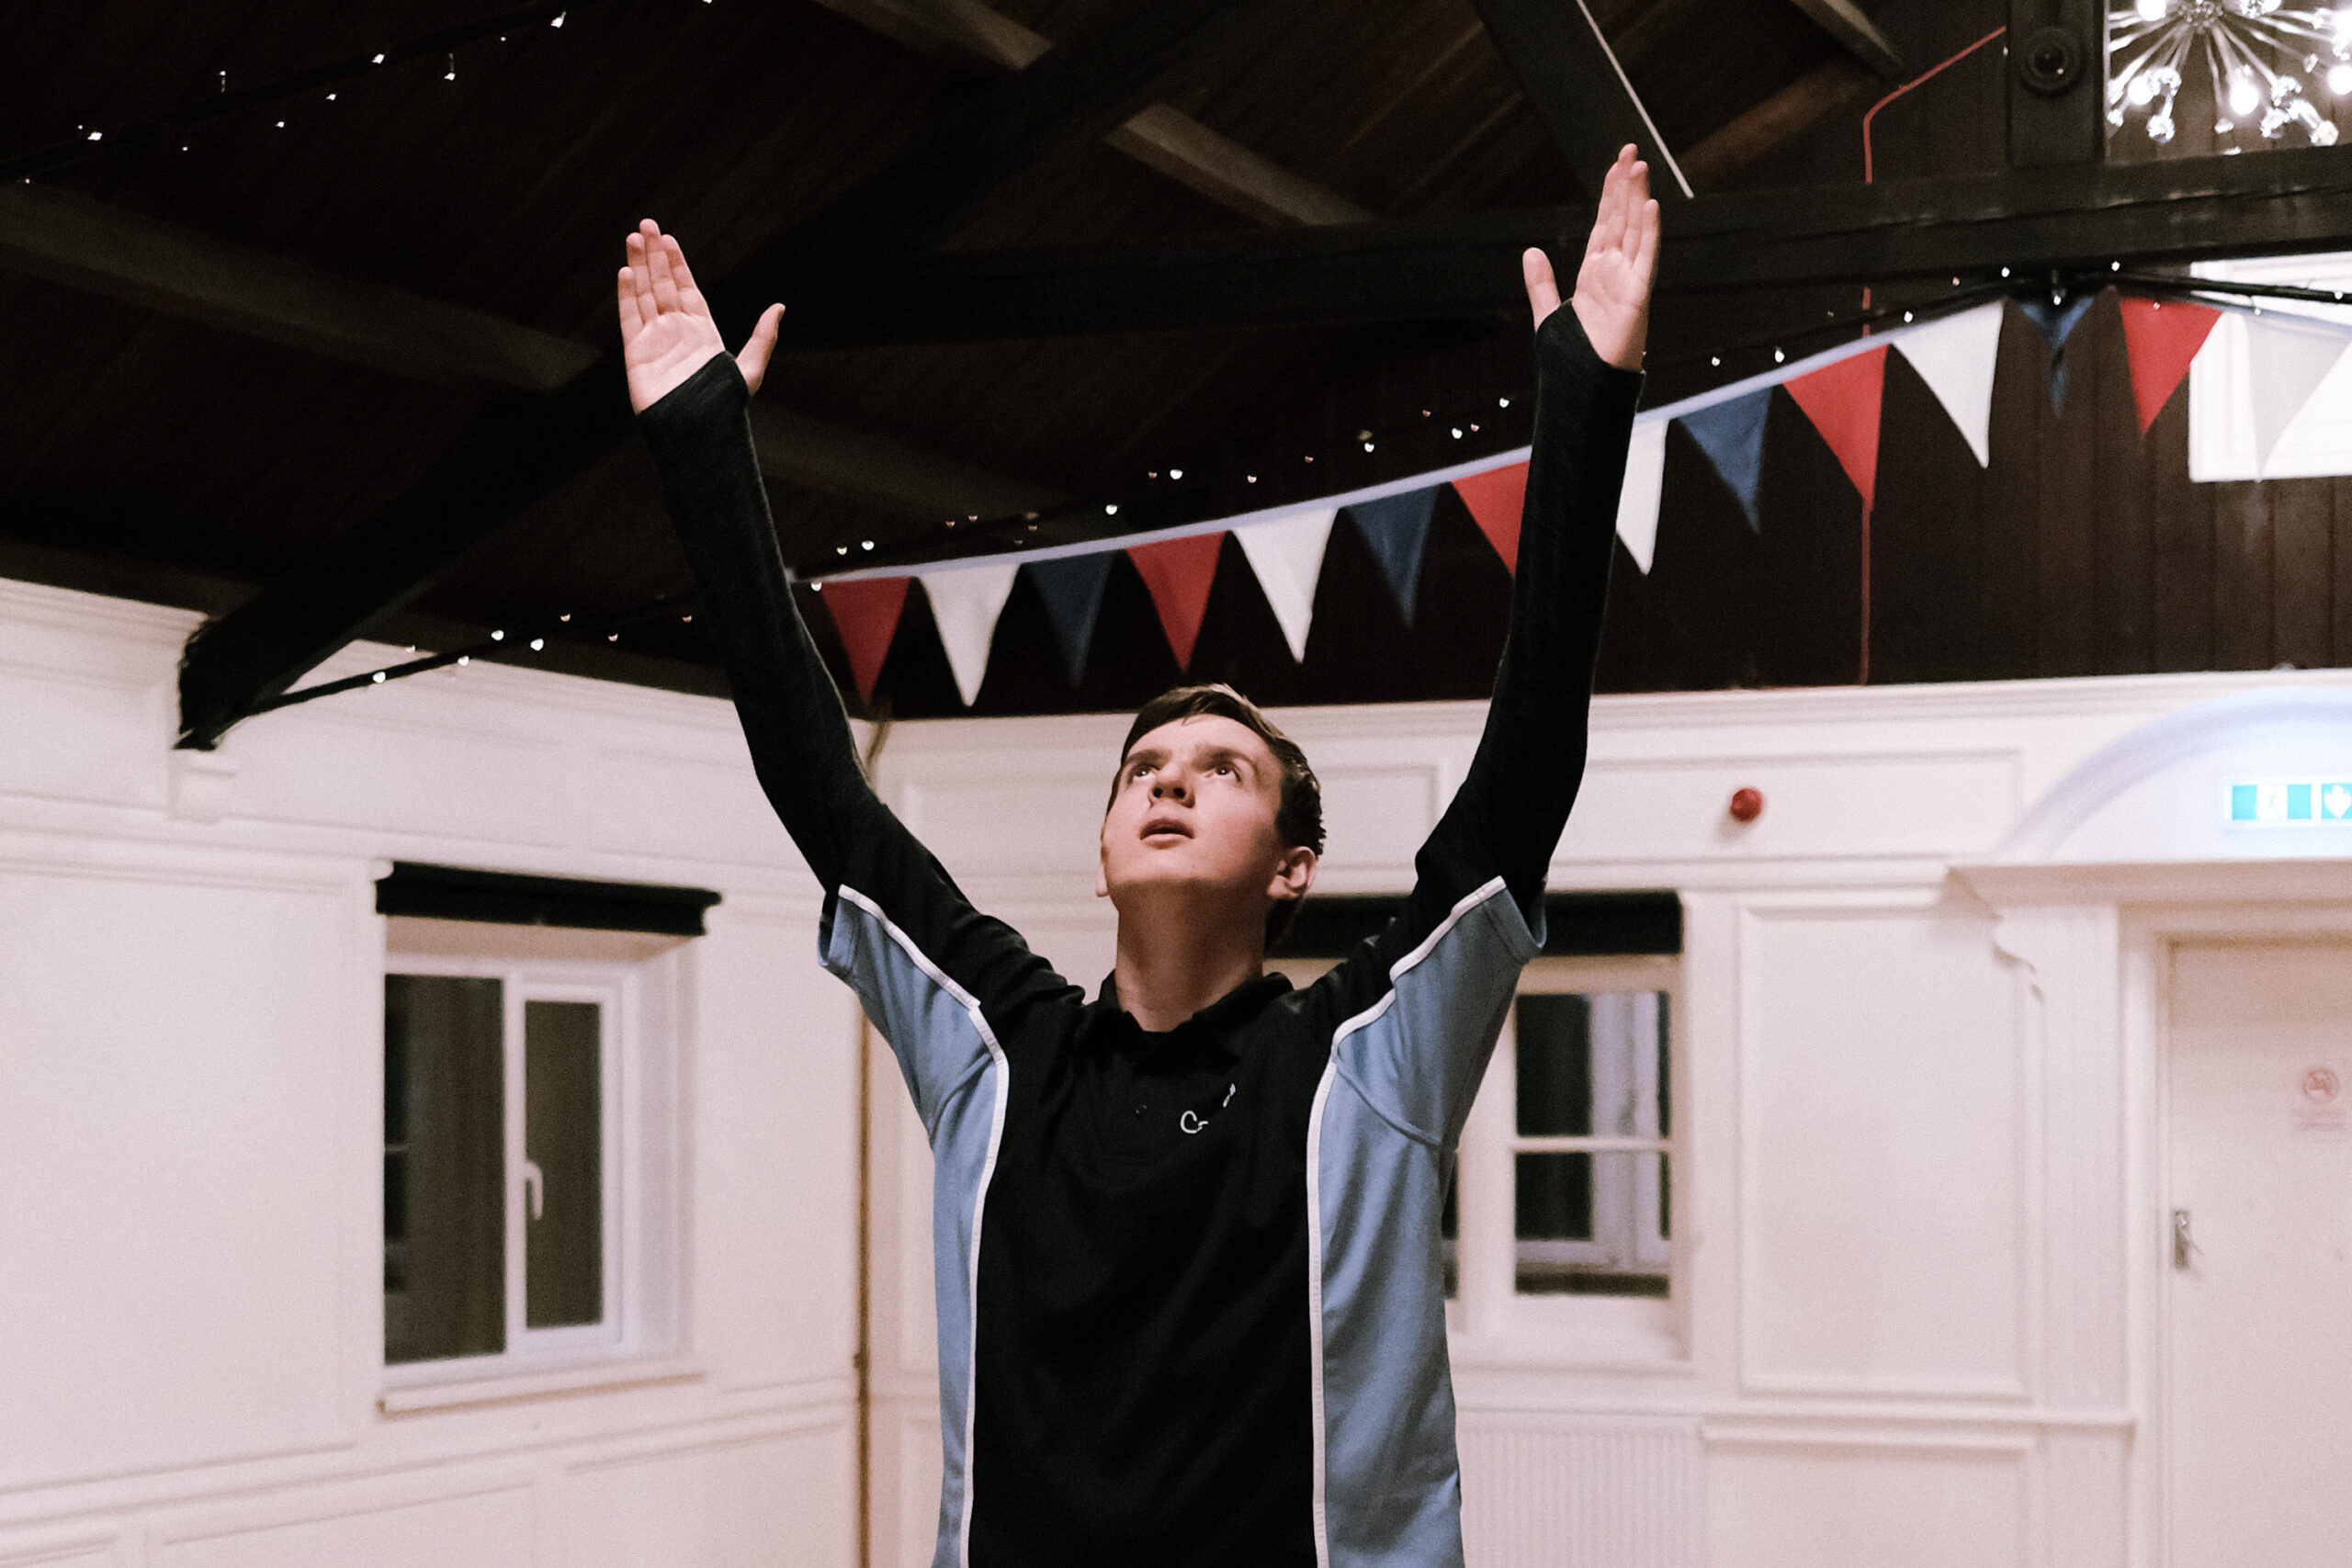 A young dancer rehearsing with arms reaching up into the air